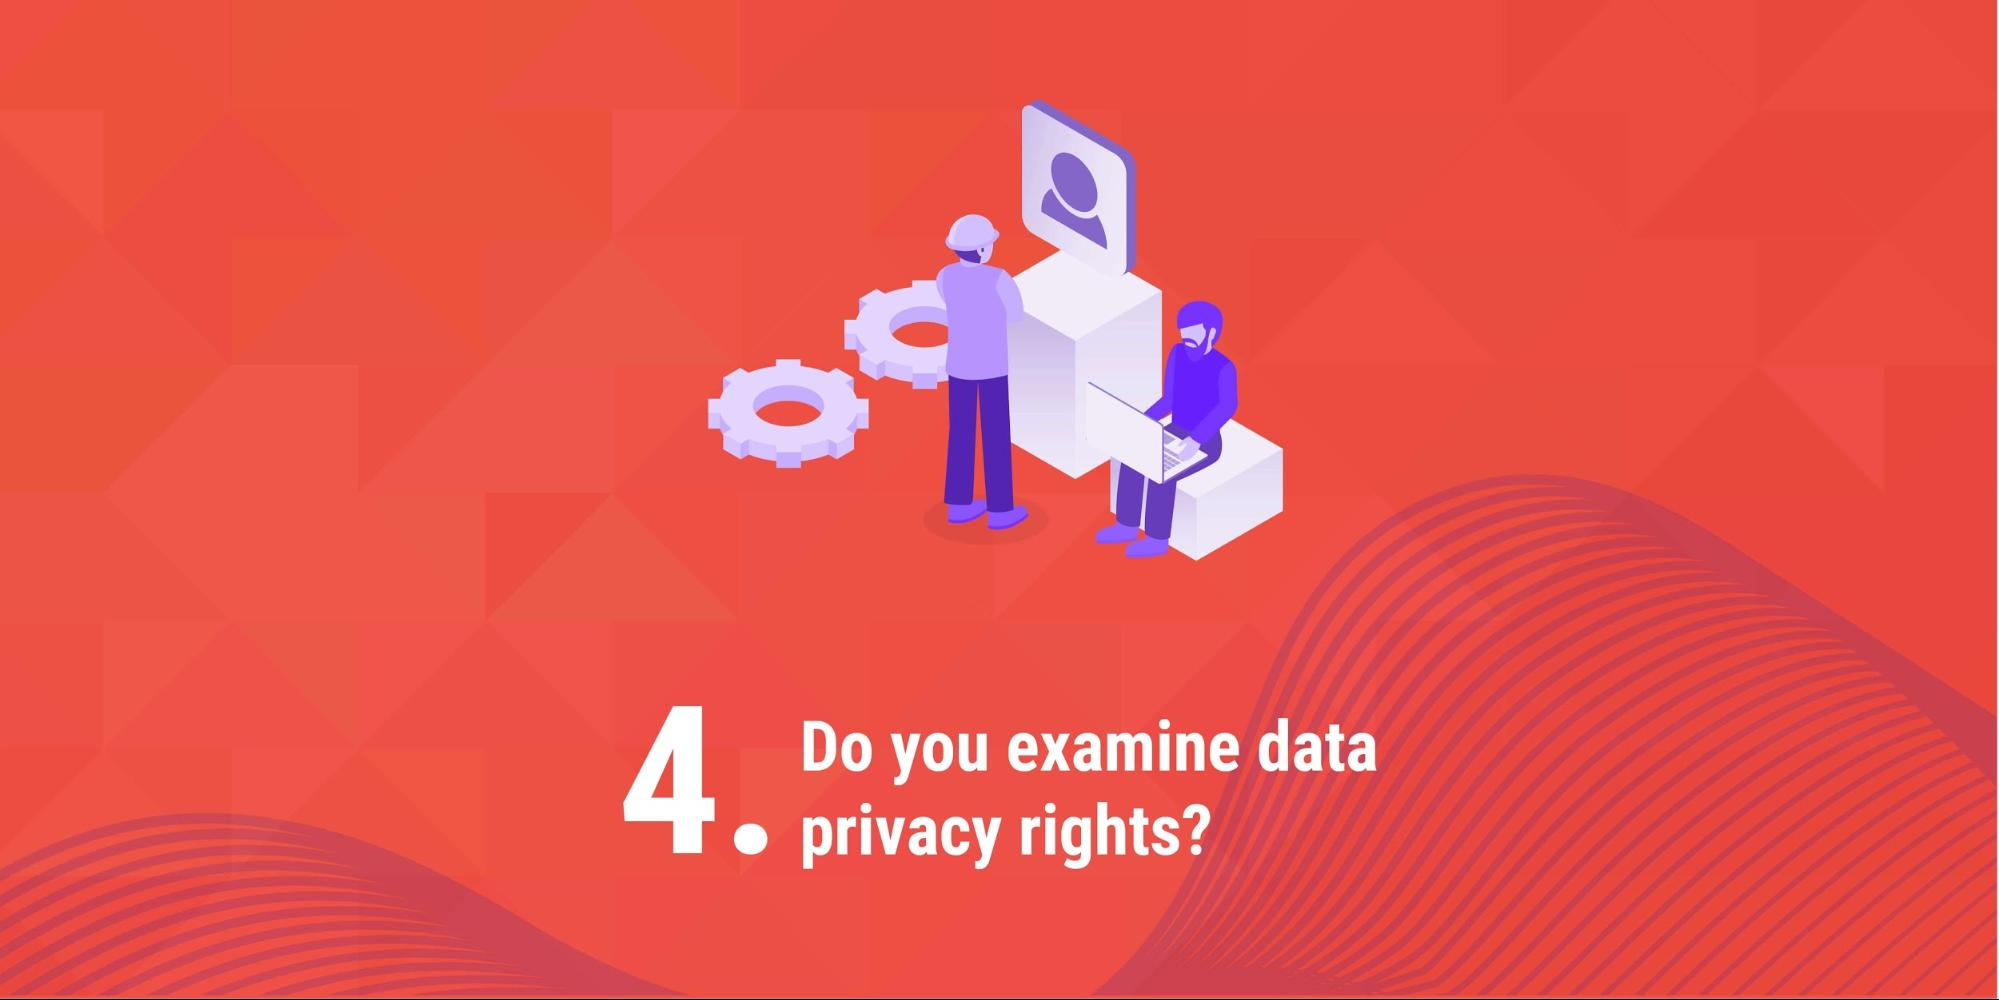 4. Do you examine data privacy rights?